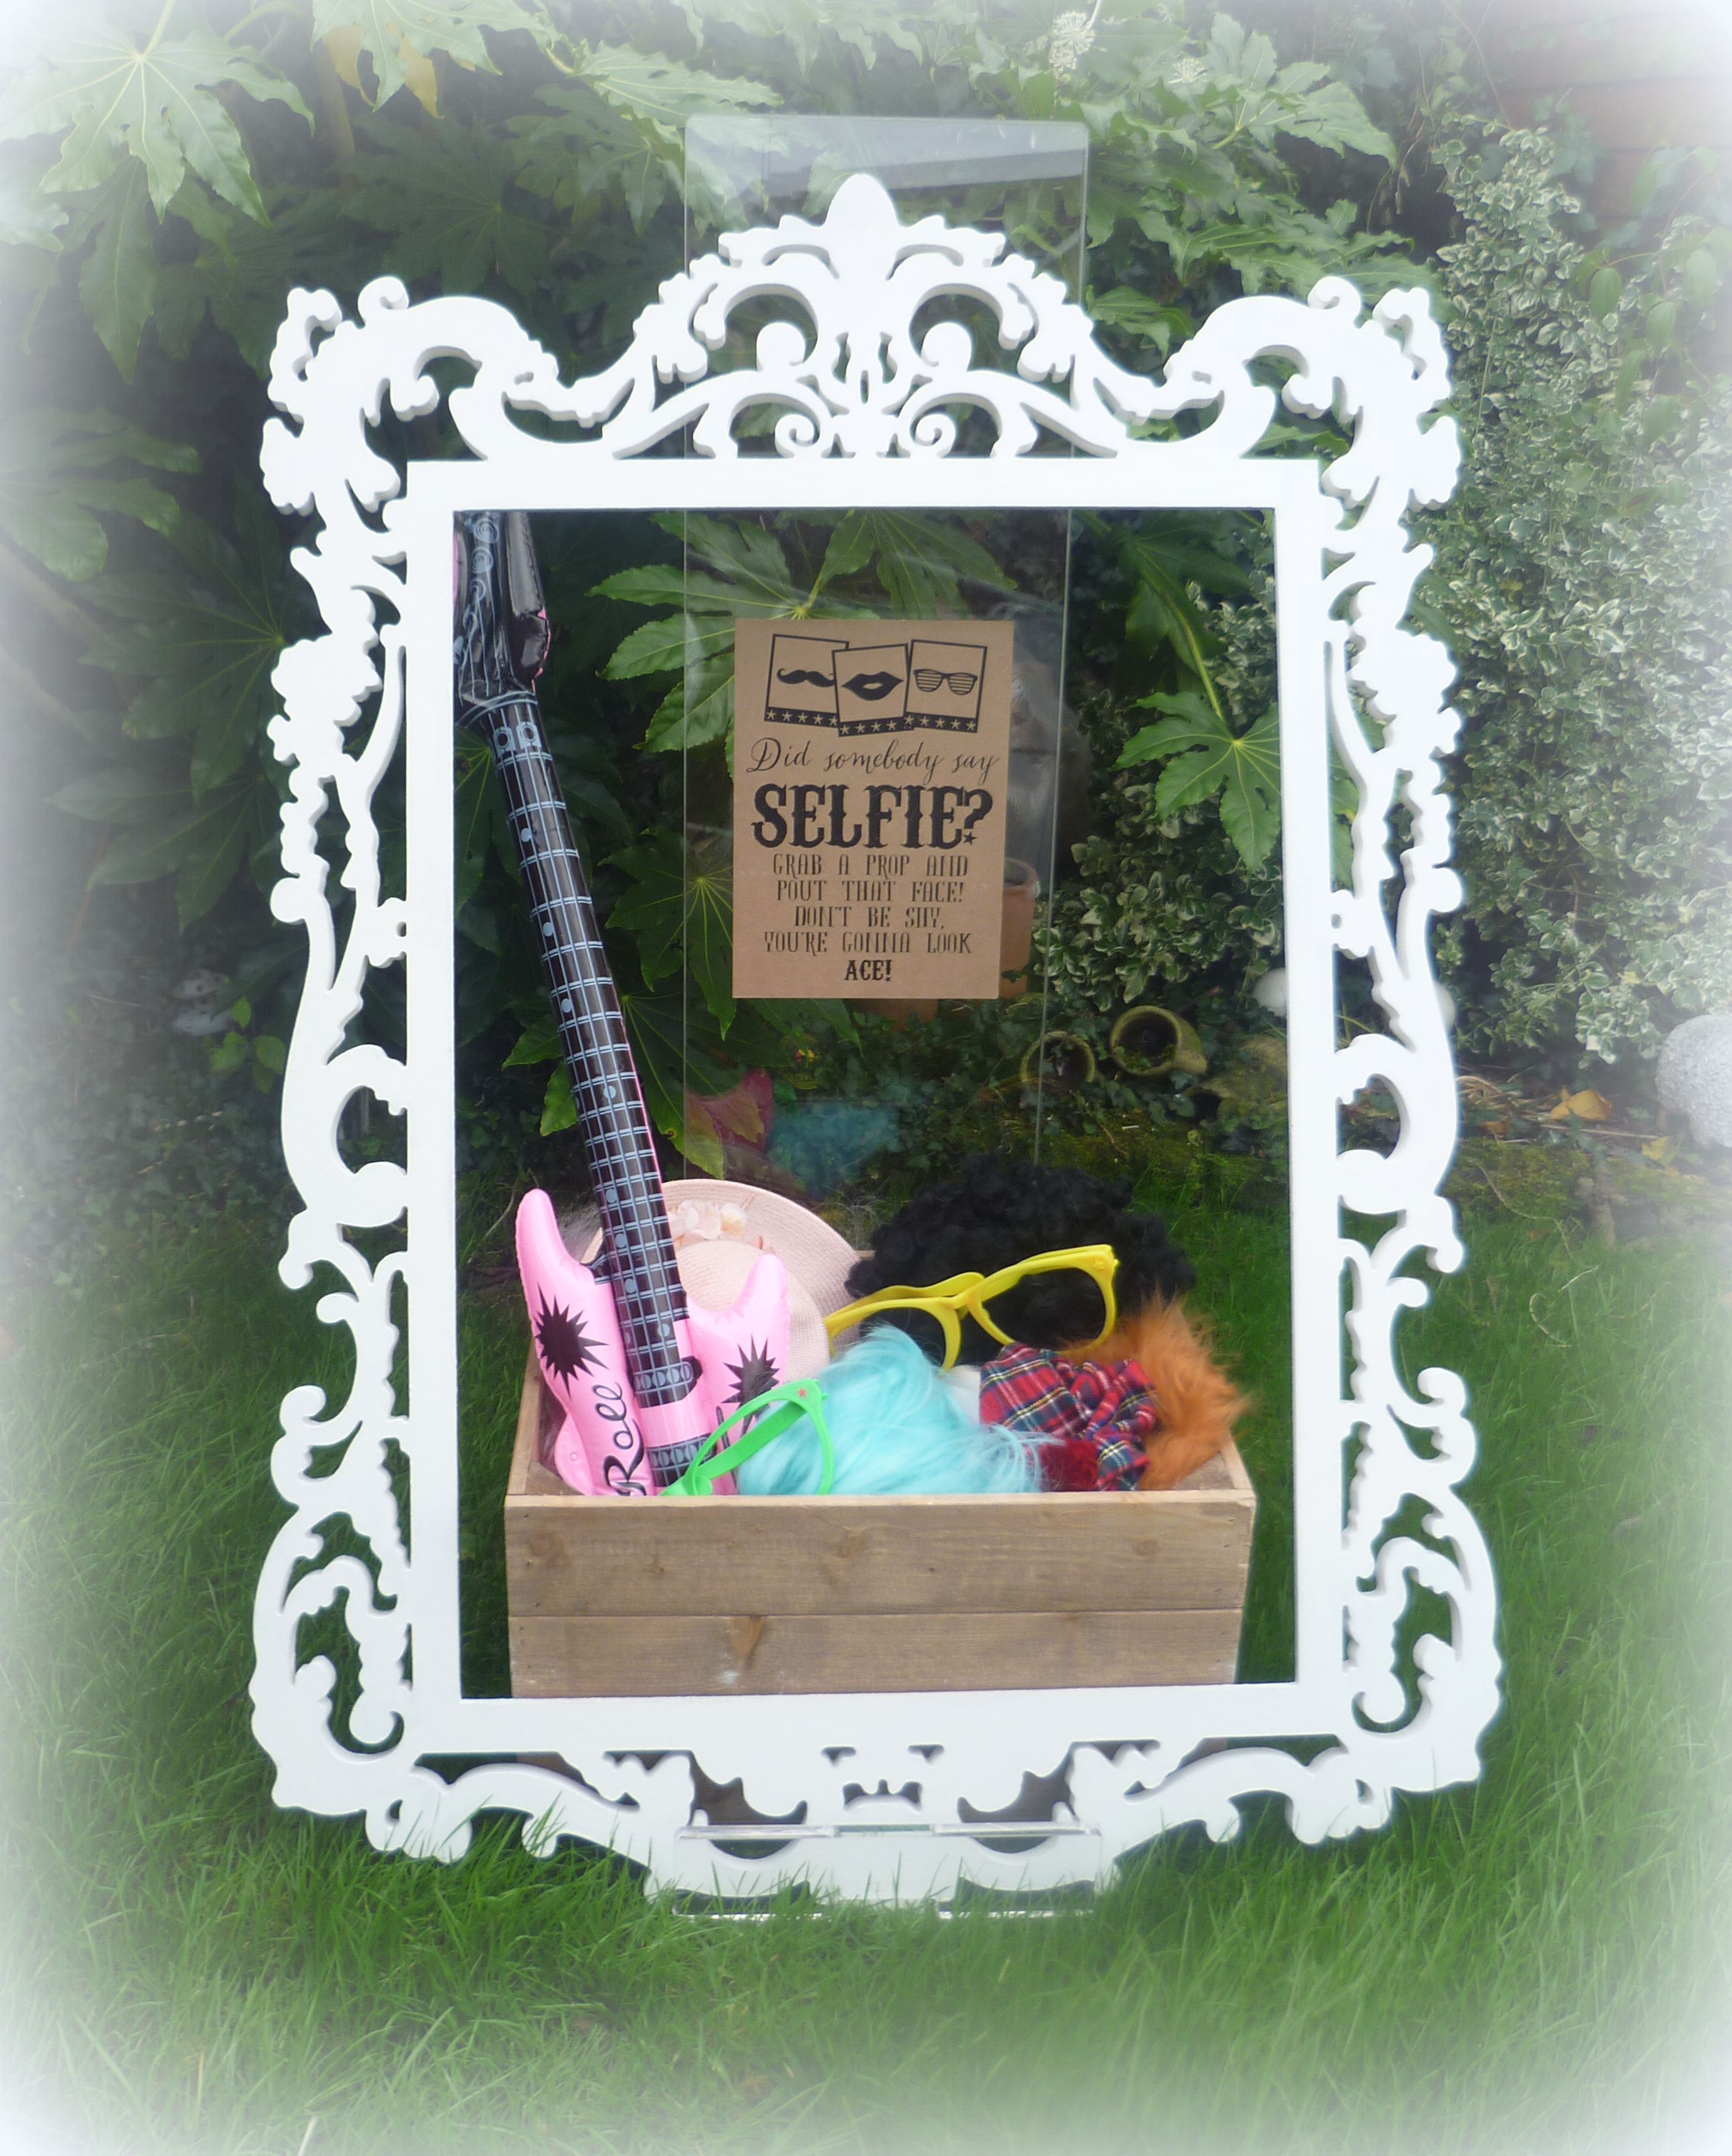 DIY Wedding Party Photobooth Baroque Frame With Props Available To Hire From Thefabricflorist